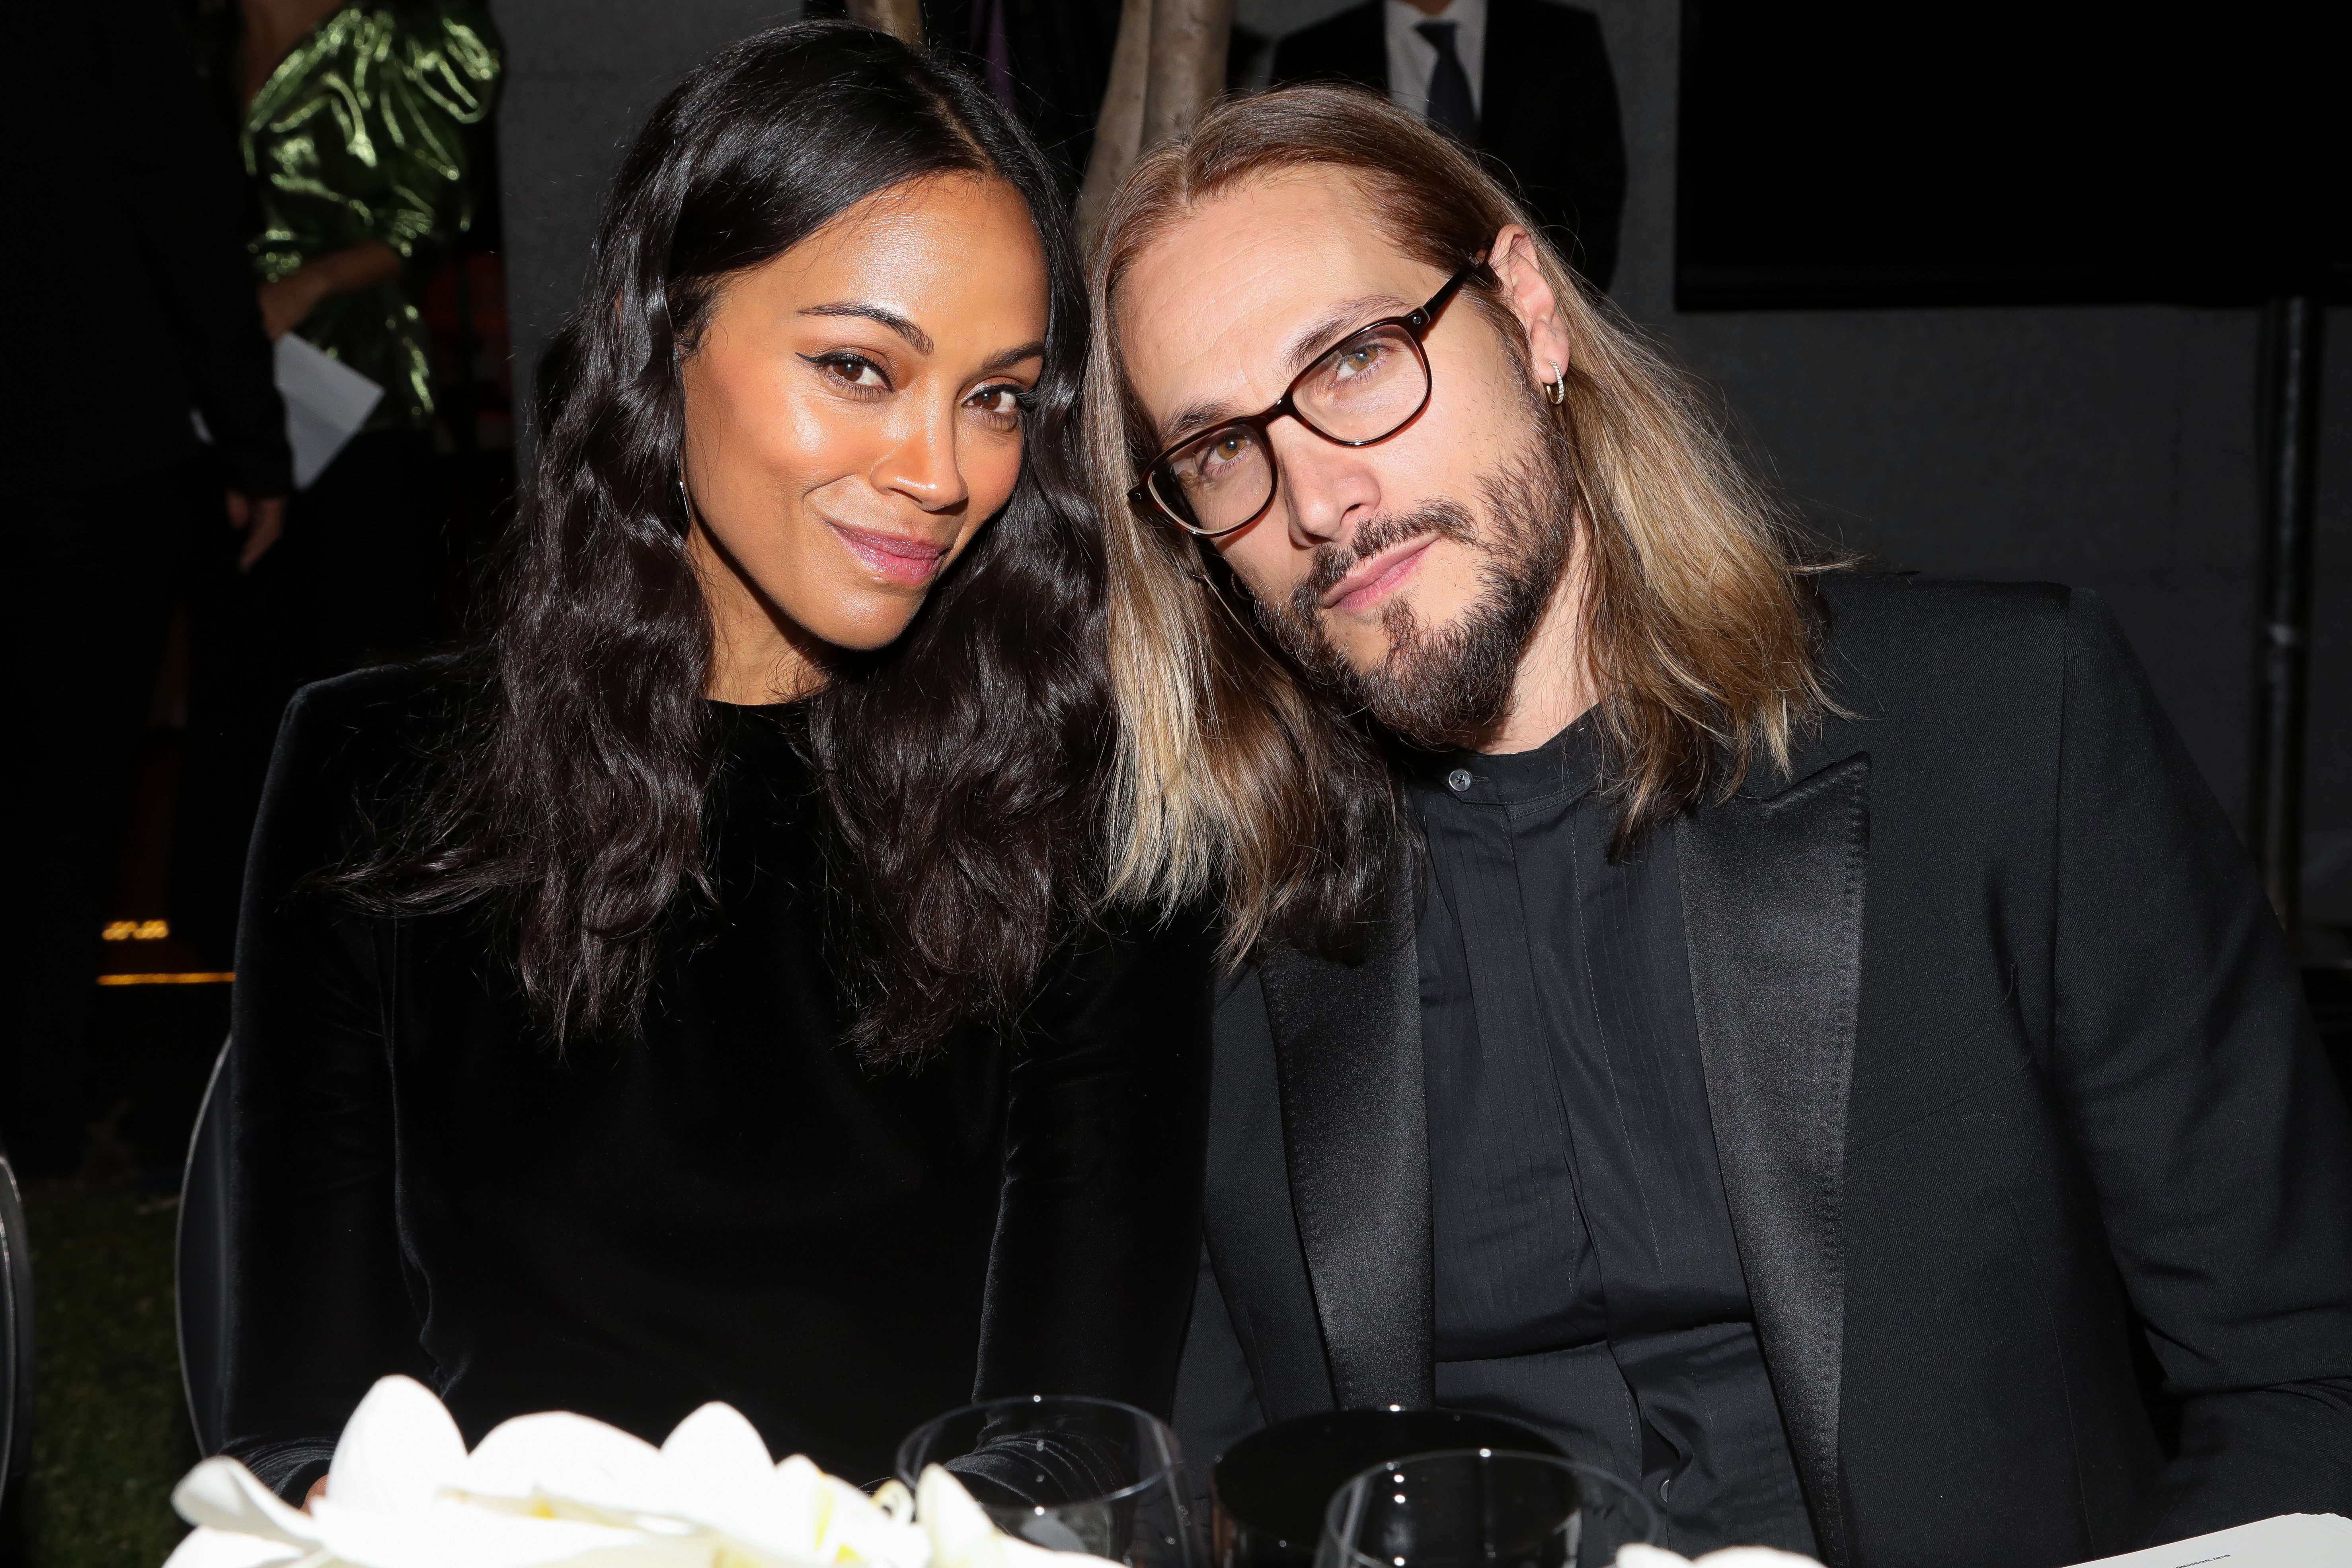 Zoe Saldana and Marco Perego pose during the amfAR gala dinner at the house of collector and museum patron Eugenio López on February 5, 2019. | Photo: GettyImages